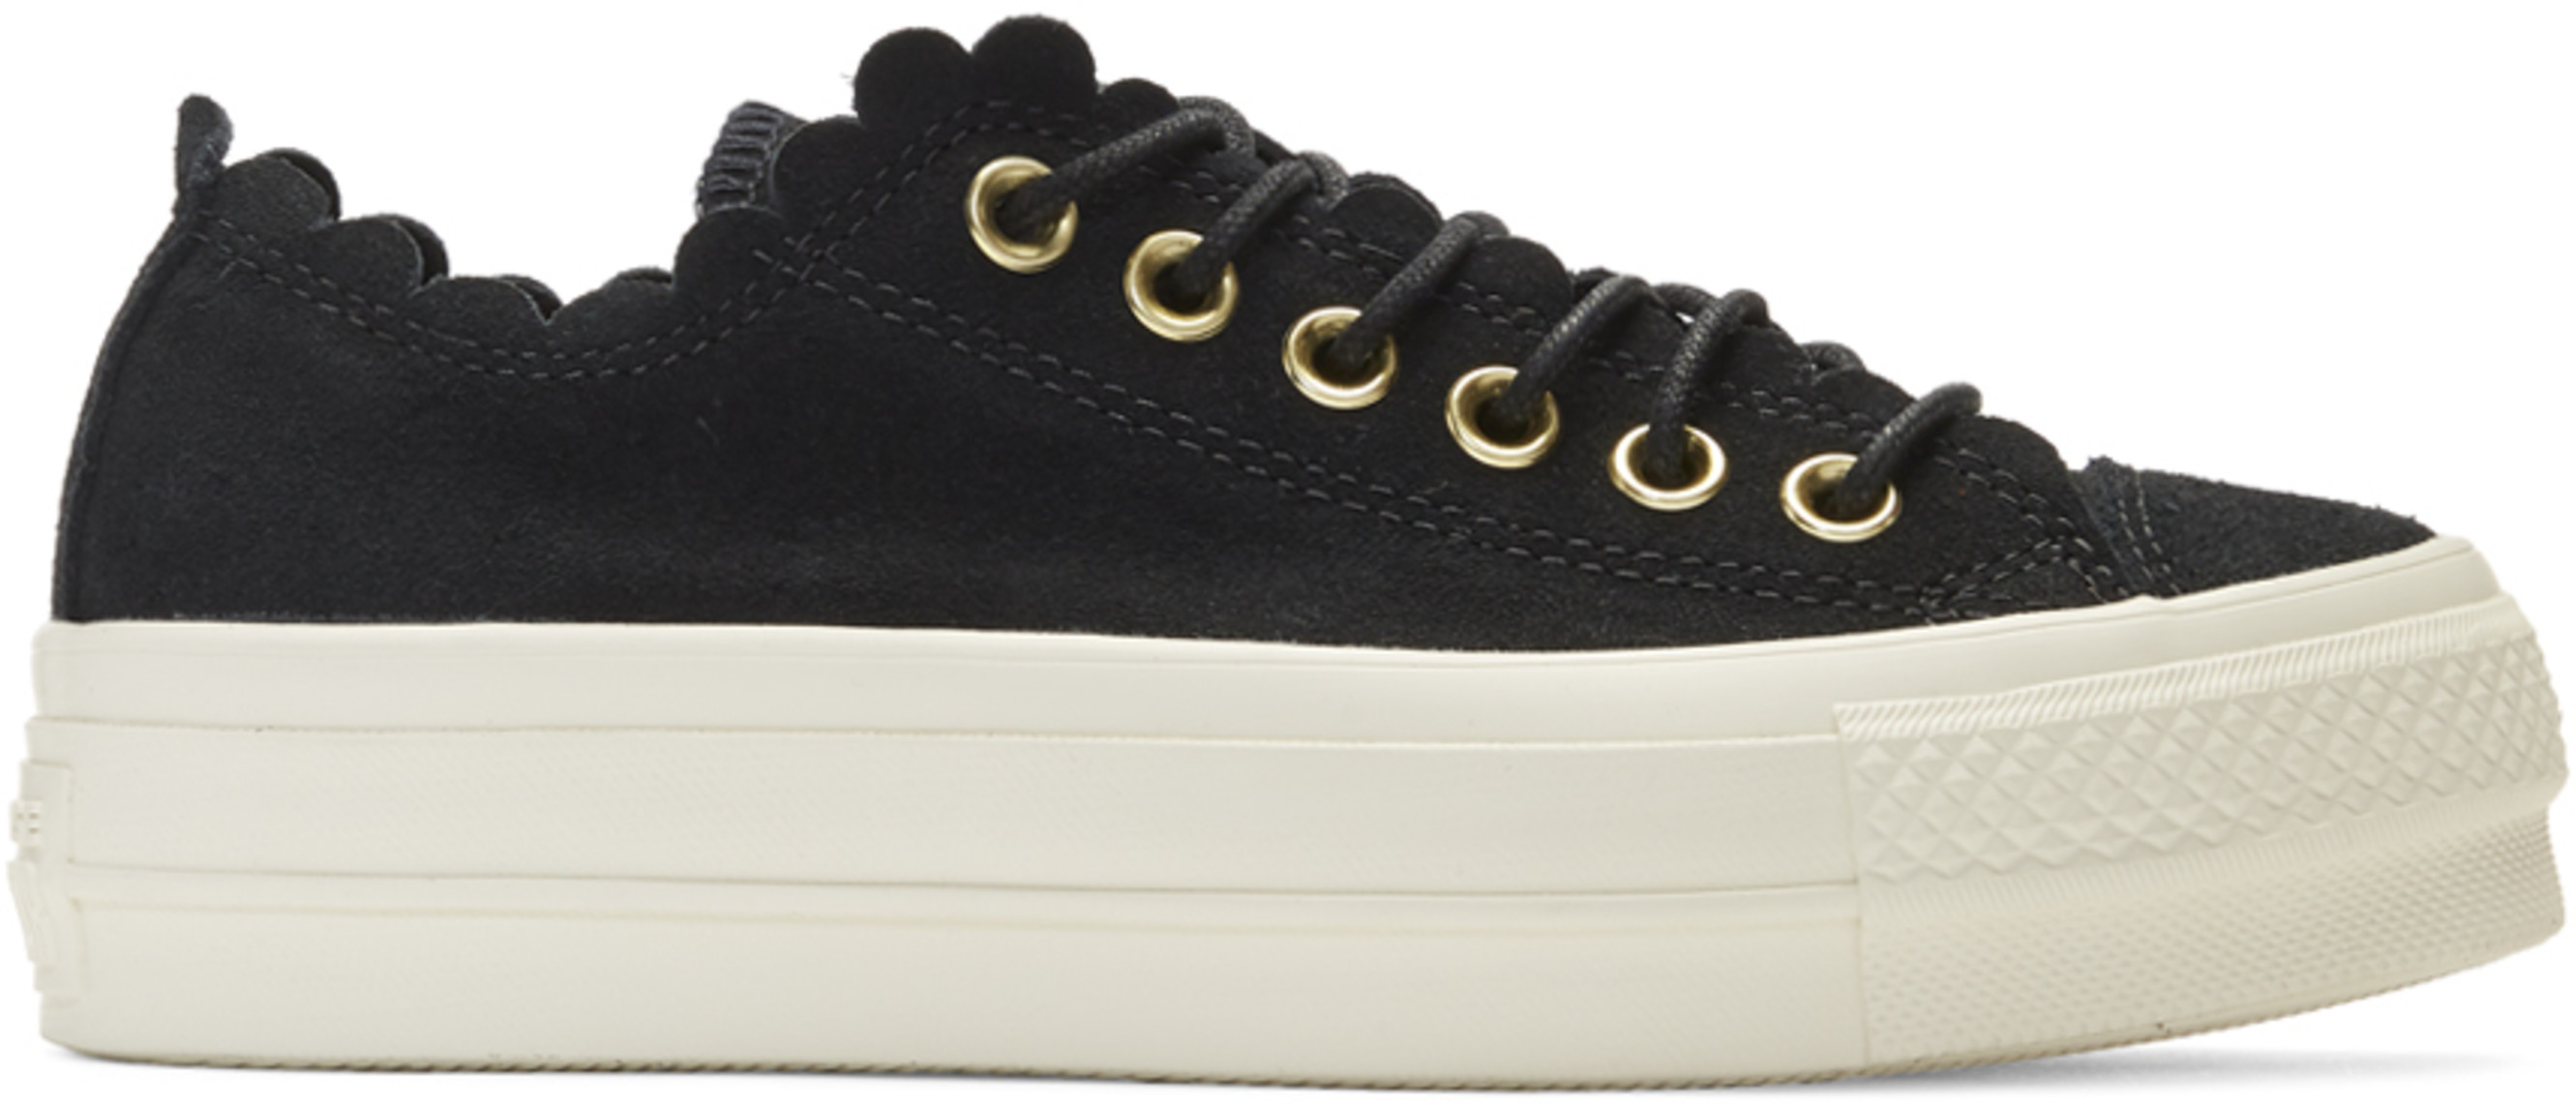 Sneakers All Suede Taylor Thrills Black Frilly Lift Chuck Star 6wf8xxadtq